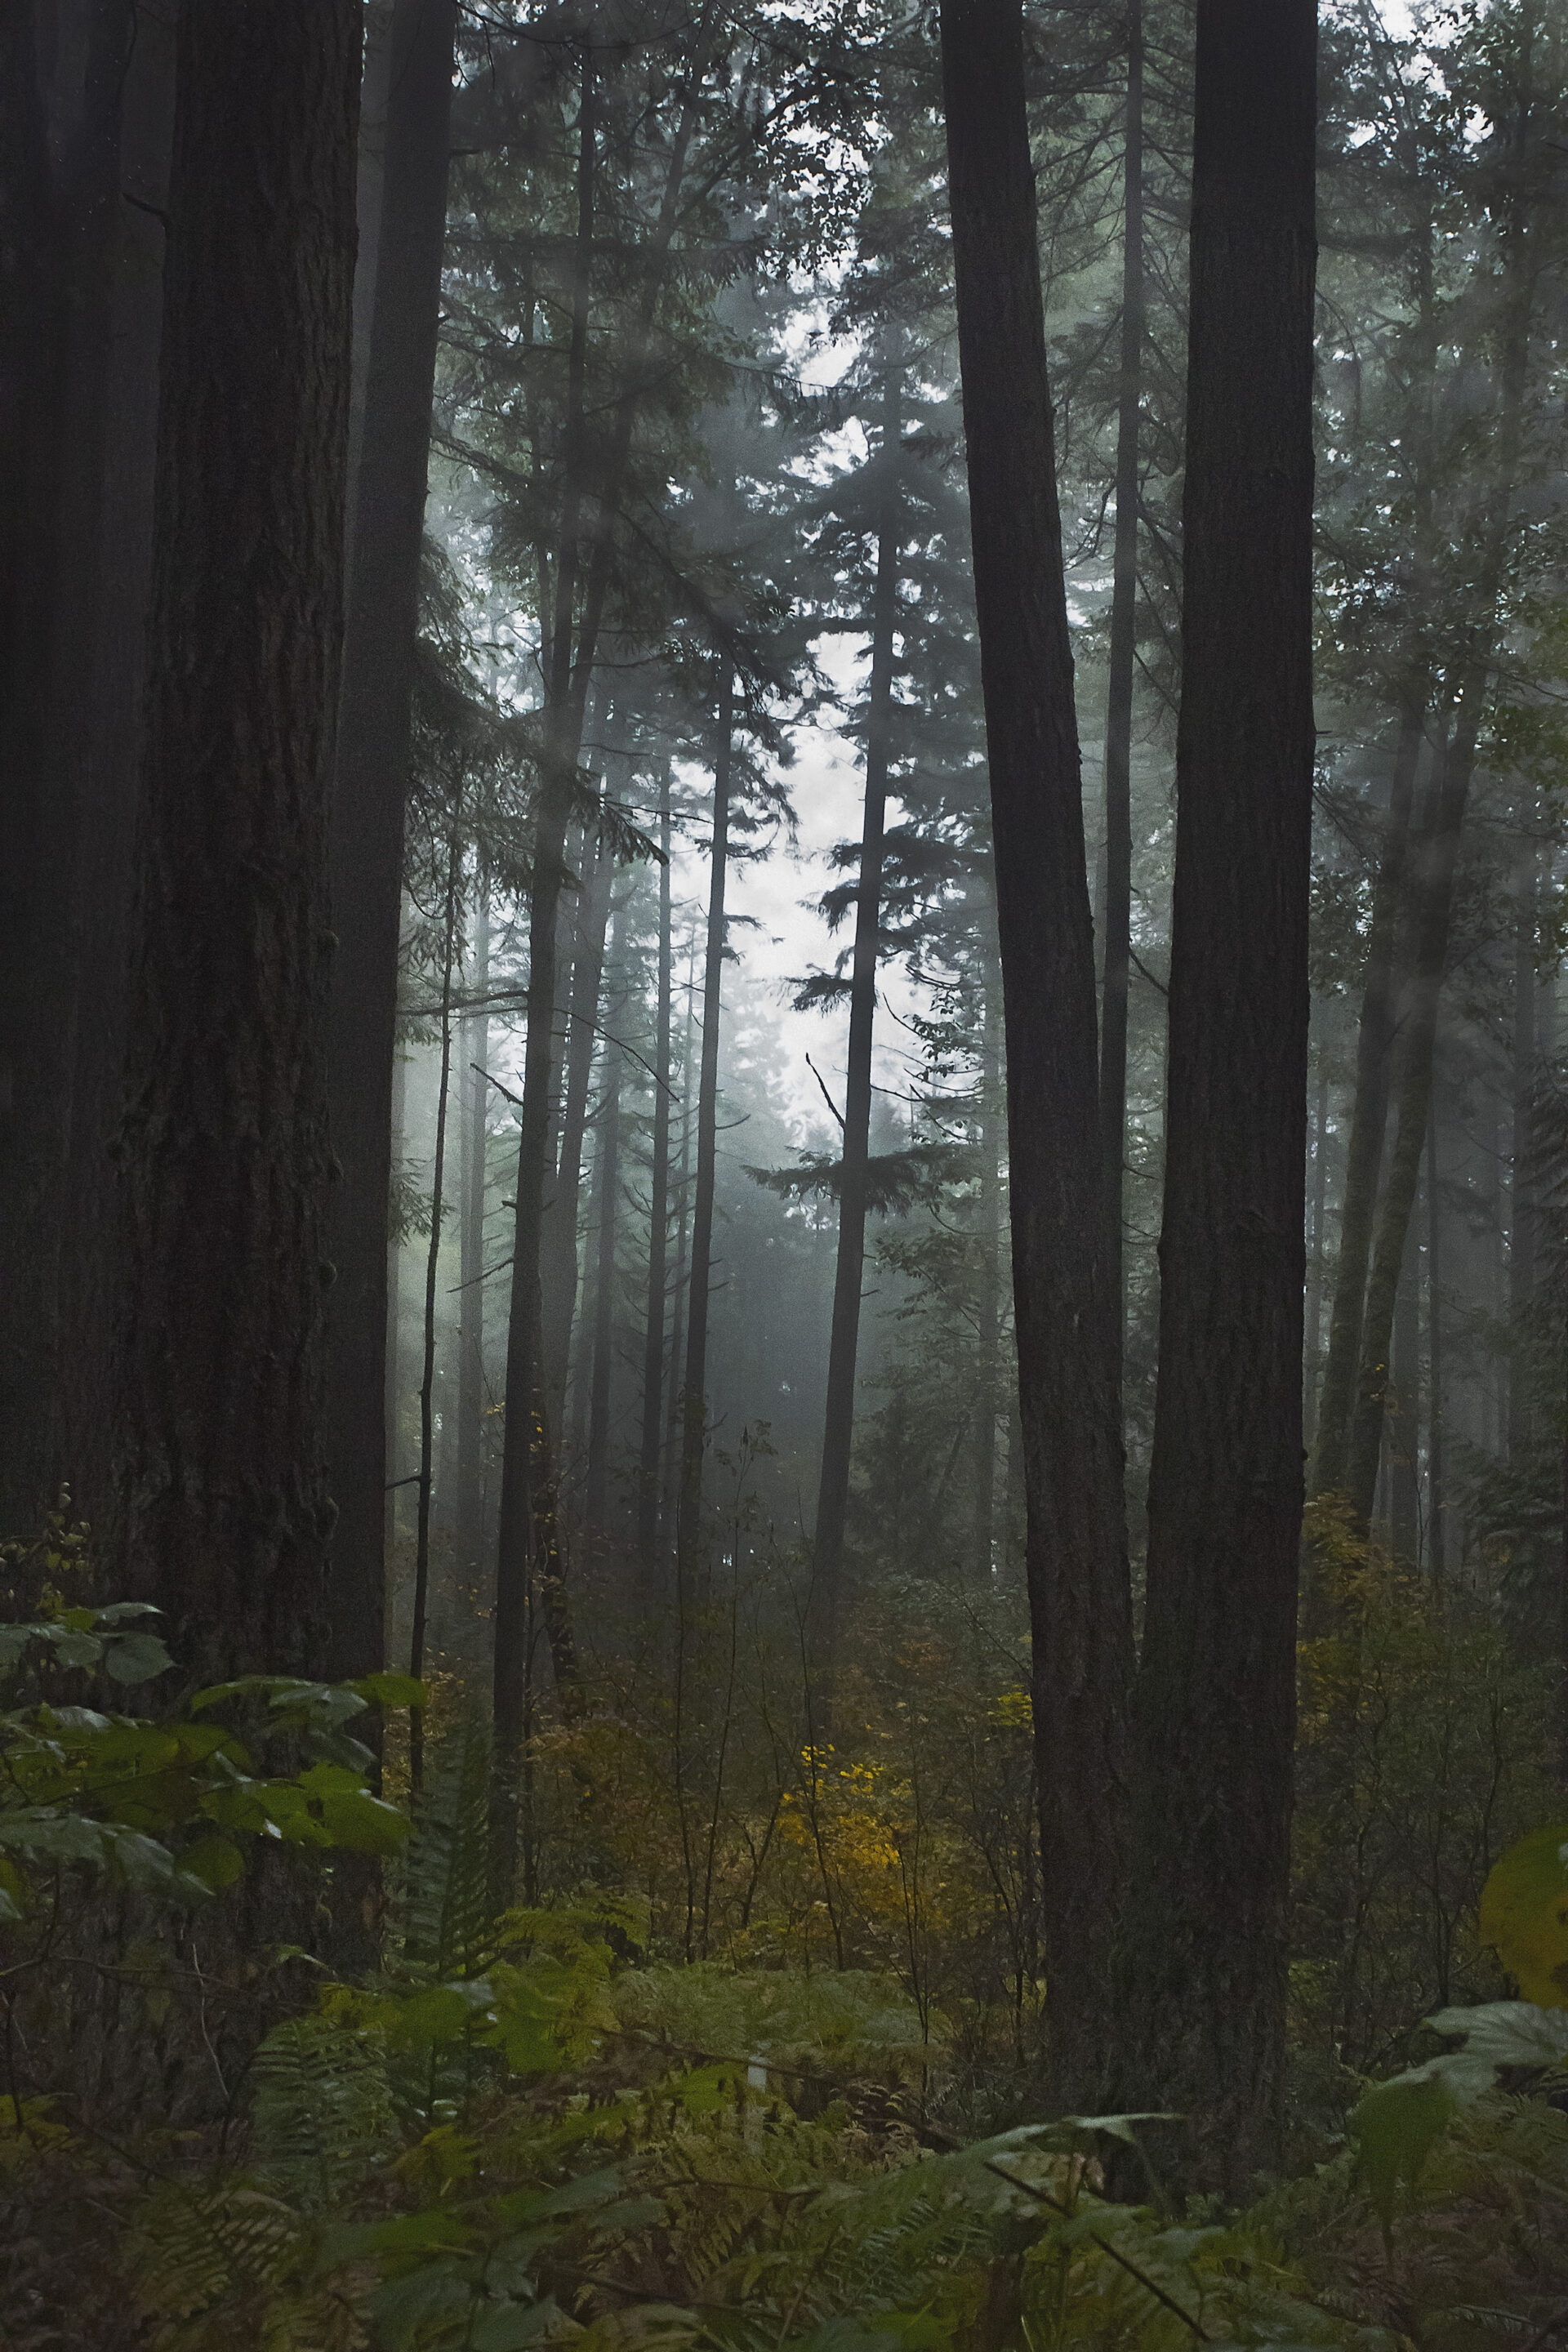 Misty Day in the Woods, October 17, 2021